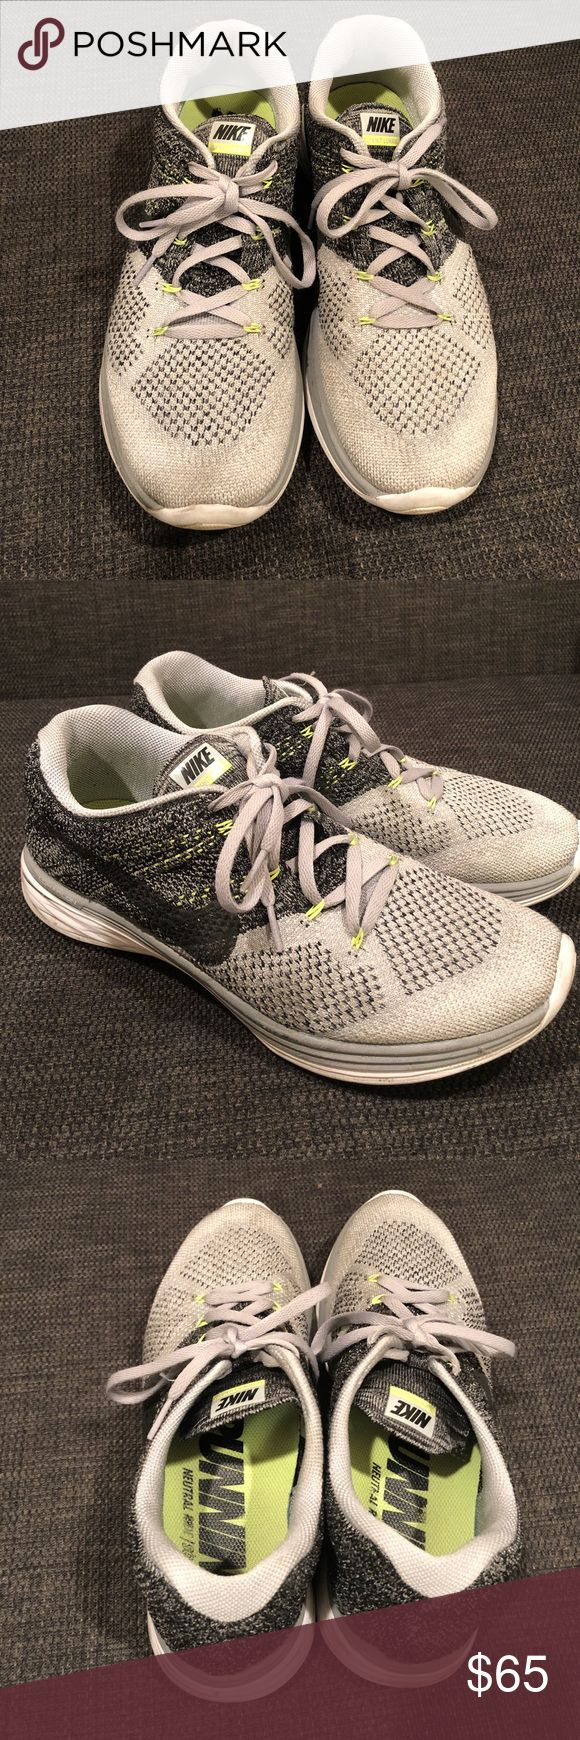 Nike Flyknit Lunar 3 Size 10 Pre-owned still in great condition. Men's Nike Flyknit Lunar 3 in grey. Perfect for running & work out :) make a reasonable offer and I will accept it. Thanks! Nike Shoes Sneakers